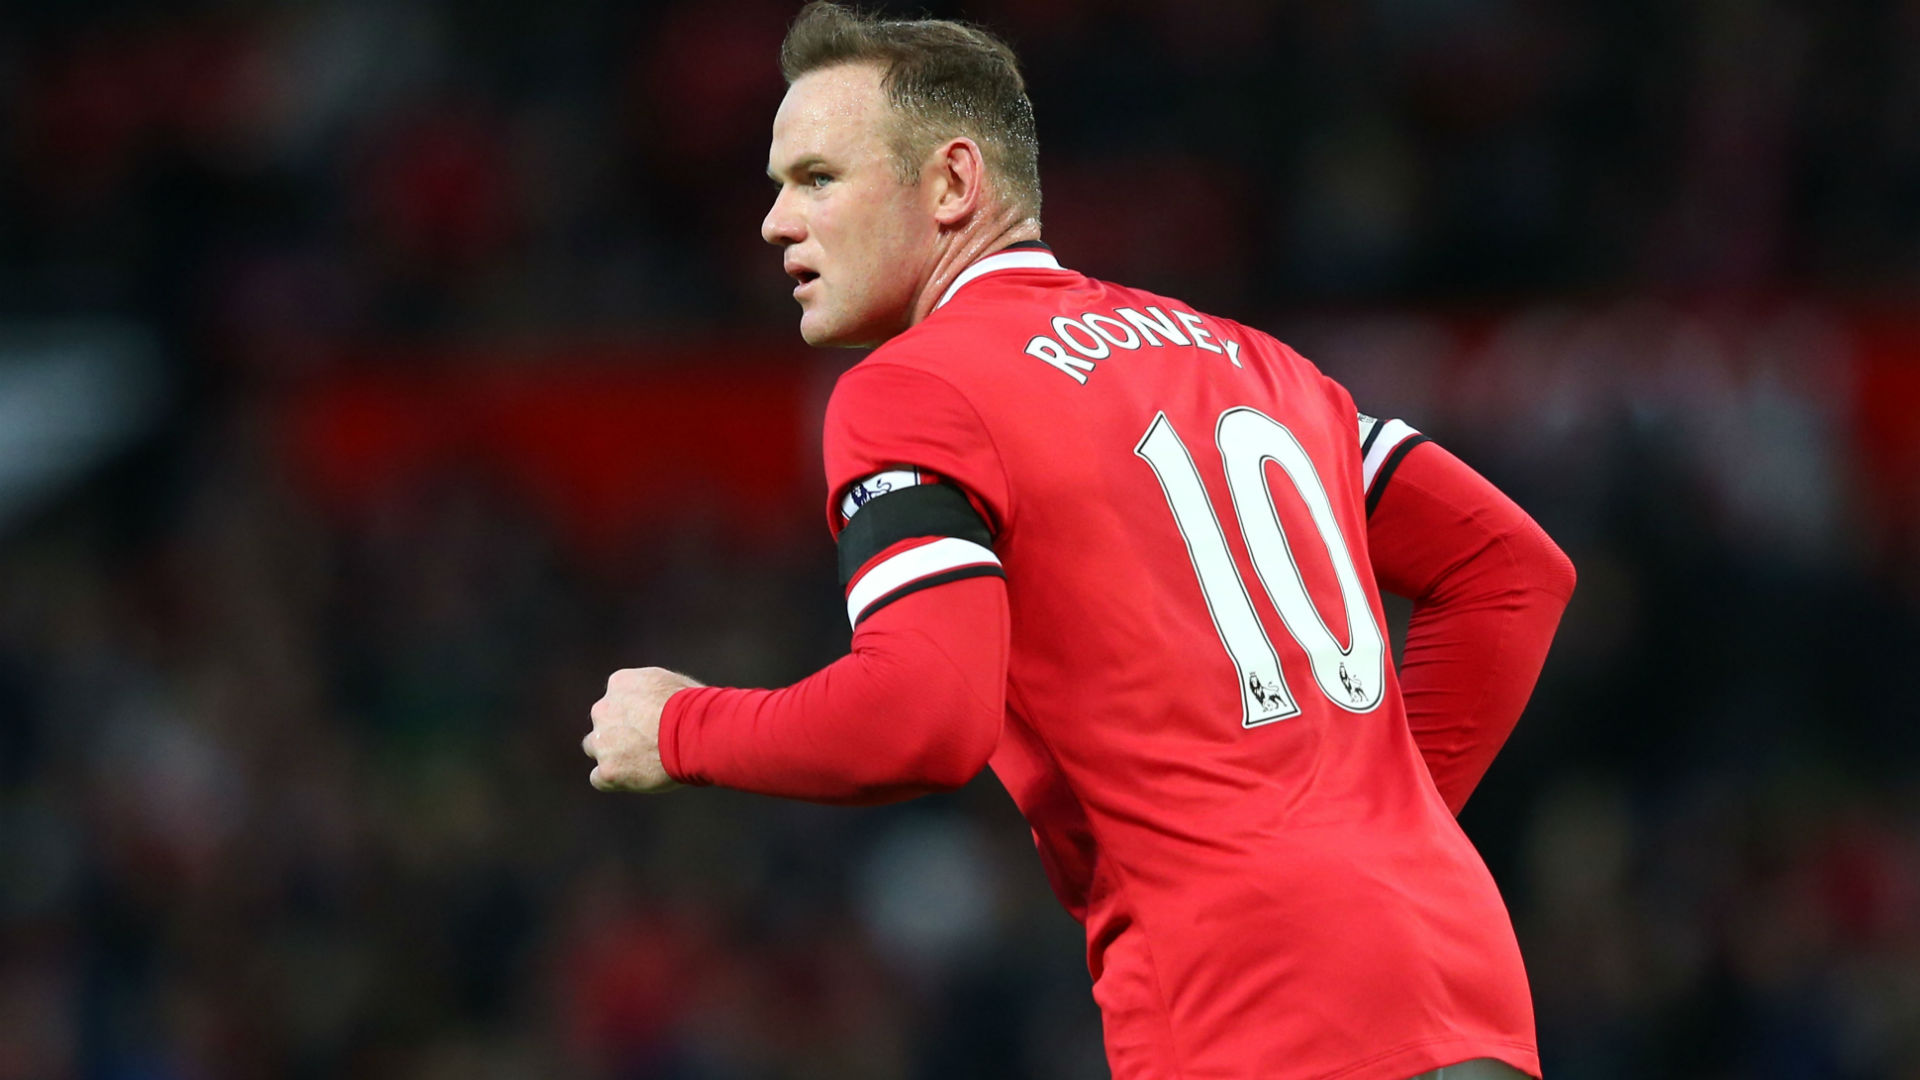 Manchester United vs. PSV odds and pick – English side advances in Champions League with home win